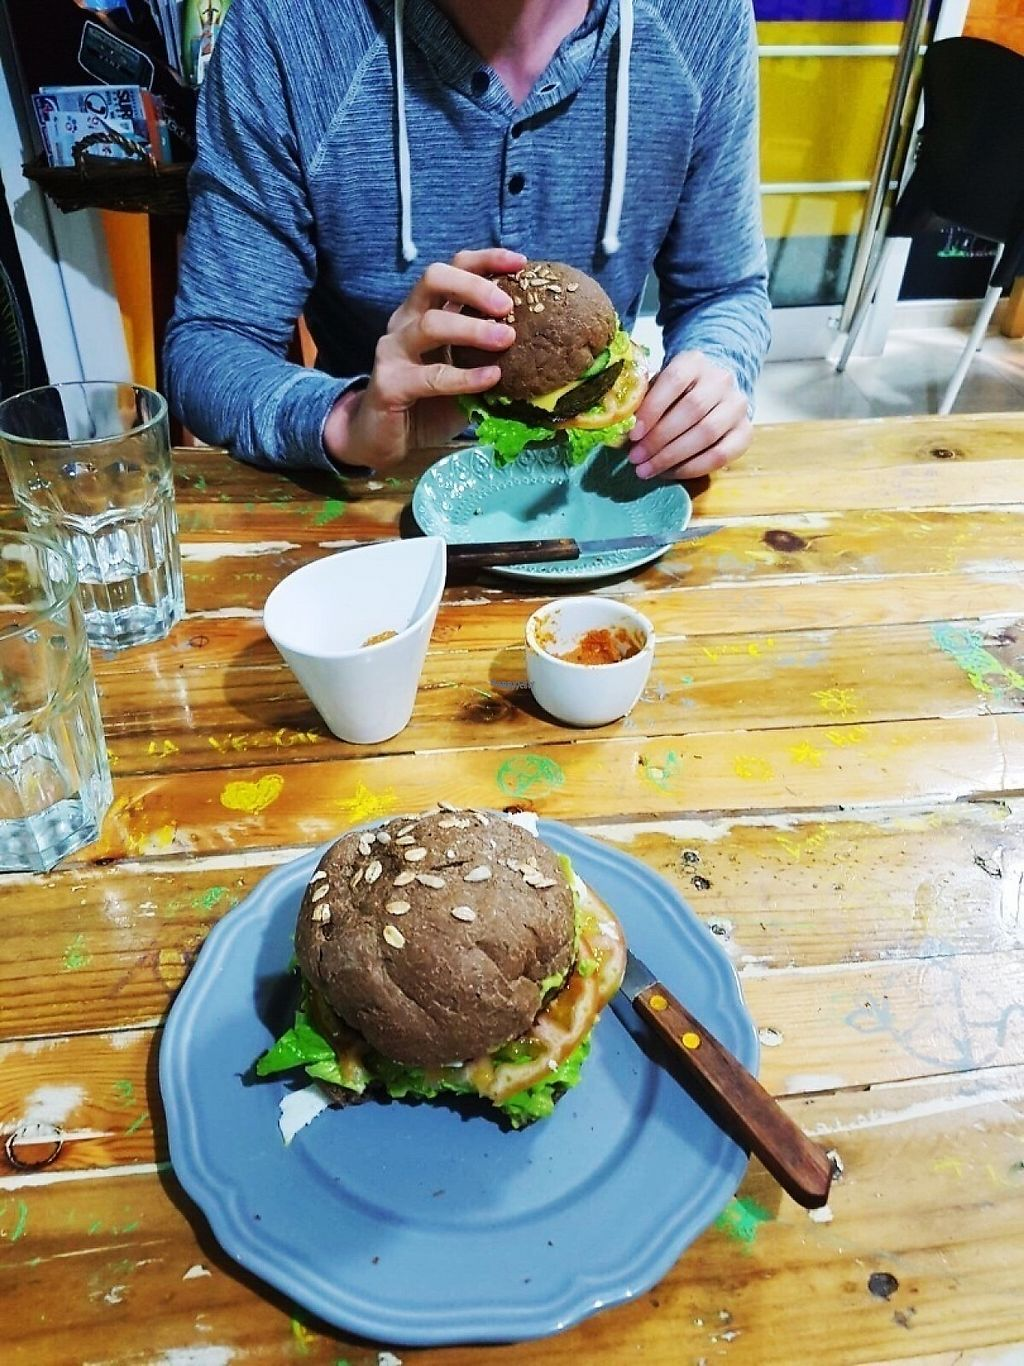 """Photo of D.Sanchez Fresh Food  by <a href=""""/members/profile/IsabelSalo"""">IsabelSalo</a> <br/>Customized broccoli burgers <br/> April 26, 2017  - <a href='/contact/abuse/image/60375/252710'>Report</a>"""